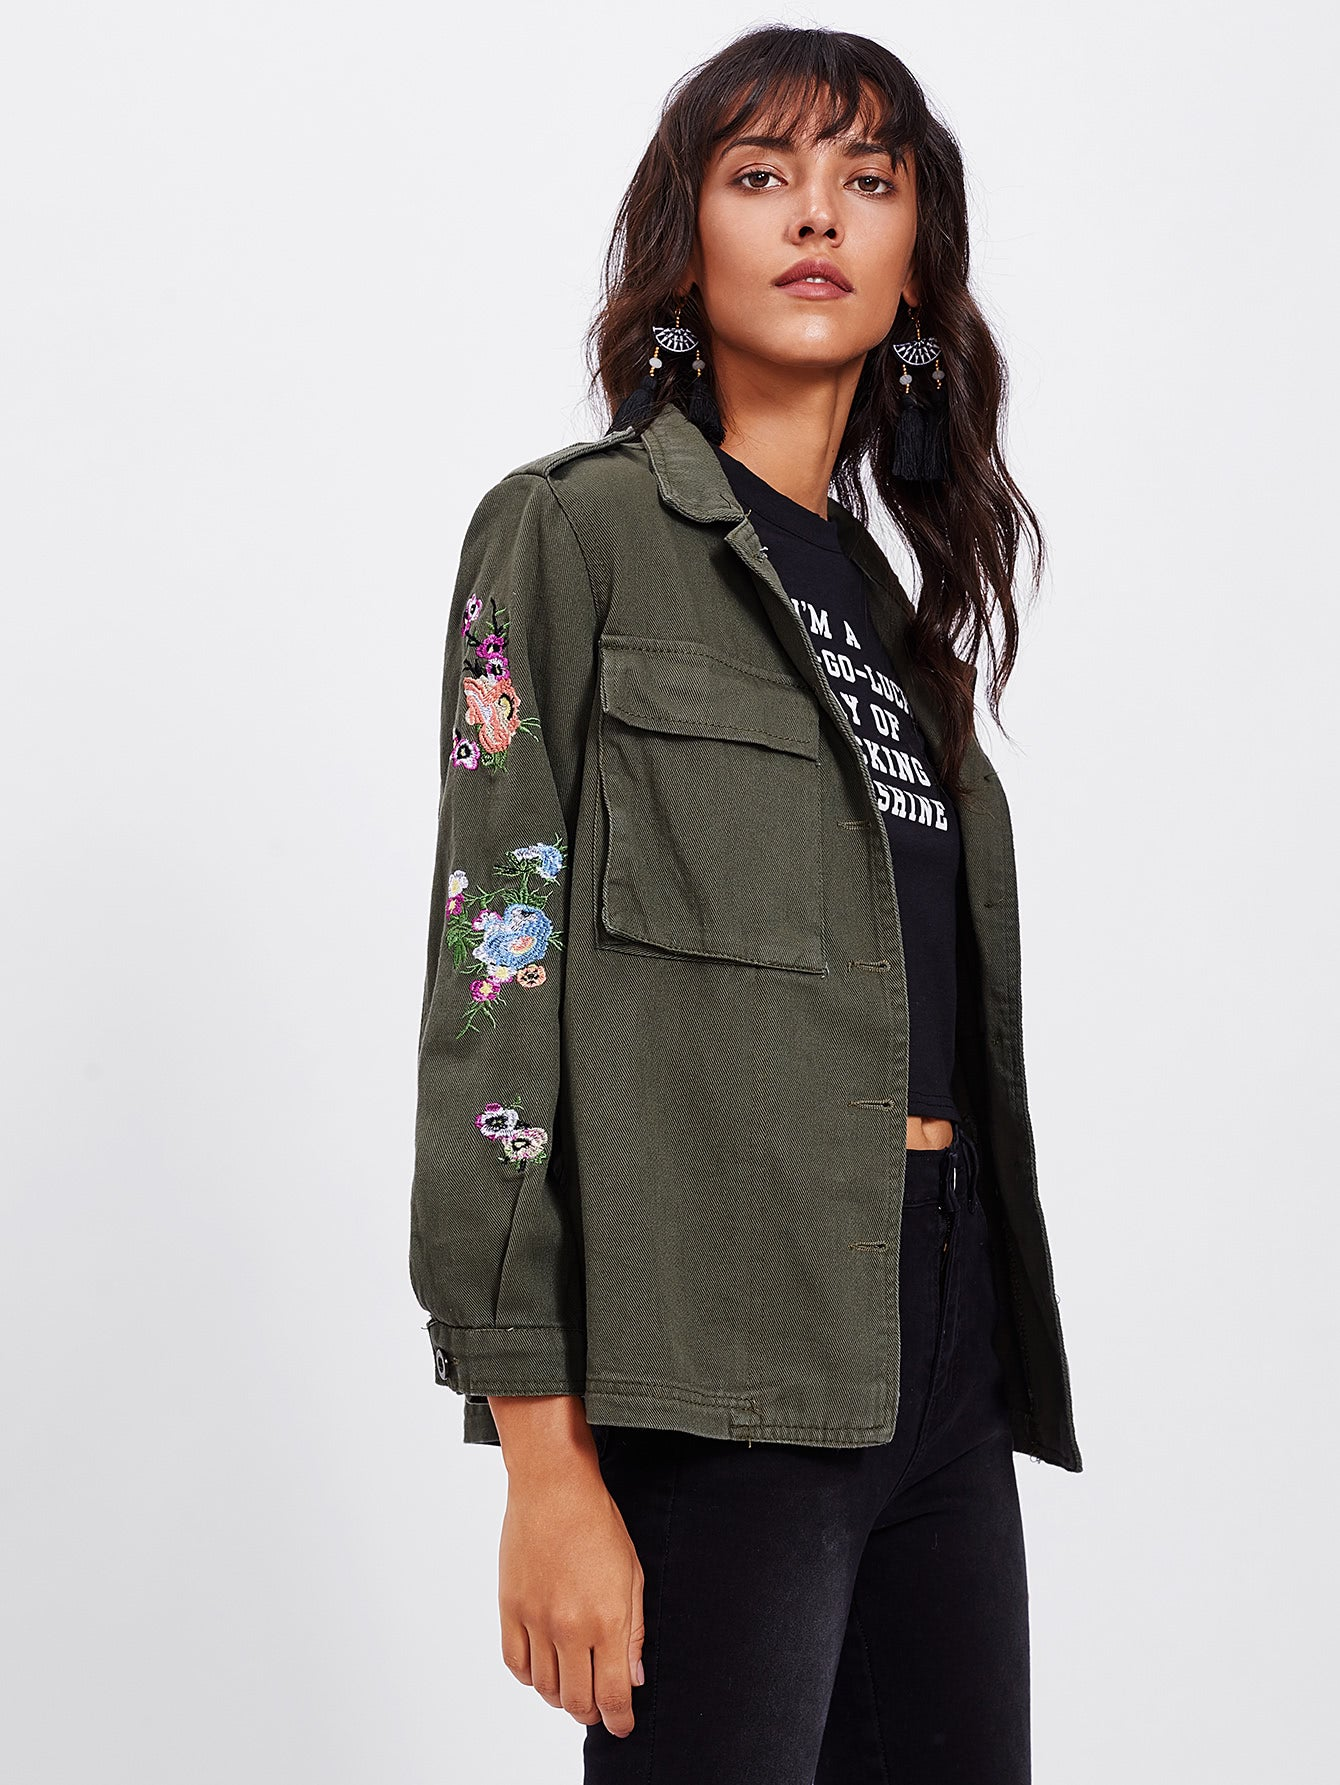 Army Green Botanical Embroidered Letter Print Jacket